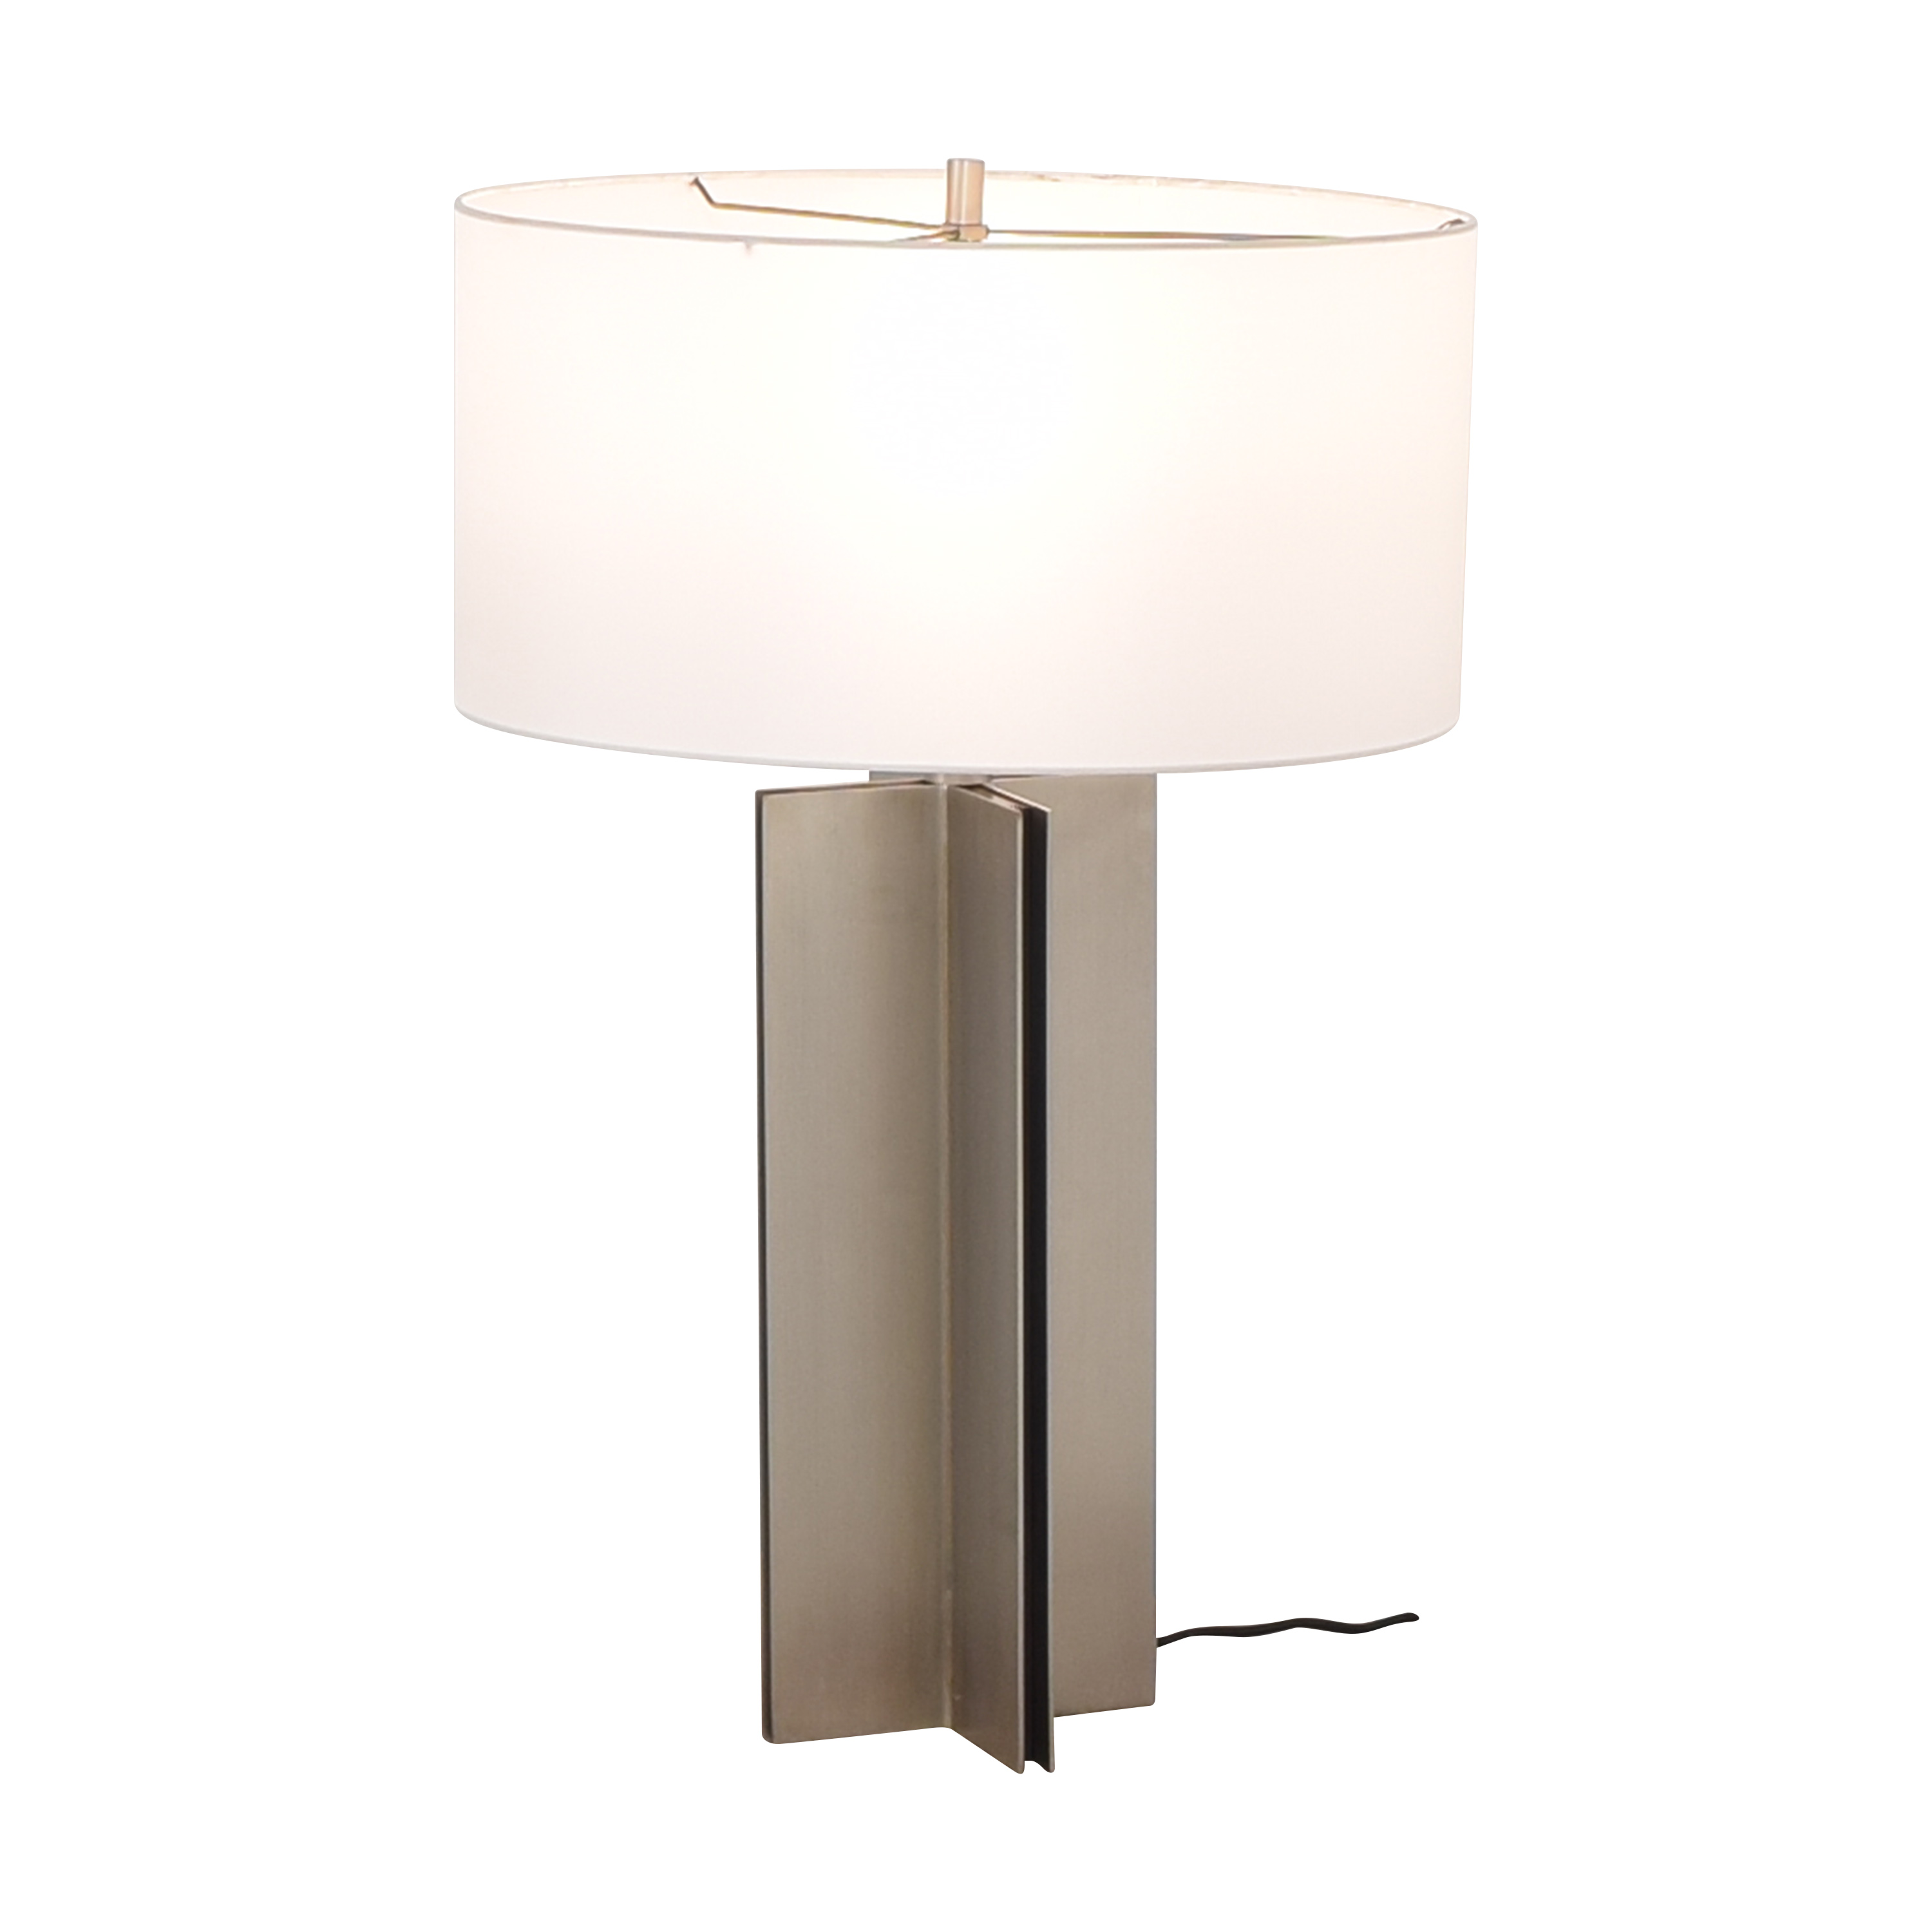 Restoration Hardware Bryson Table Lamp sale